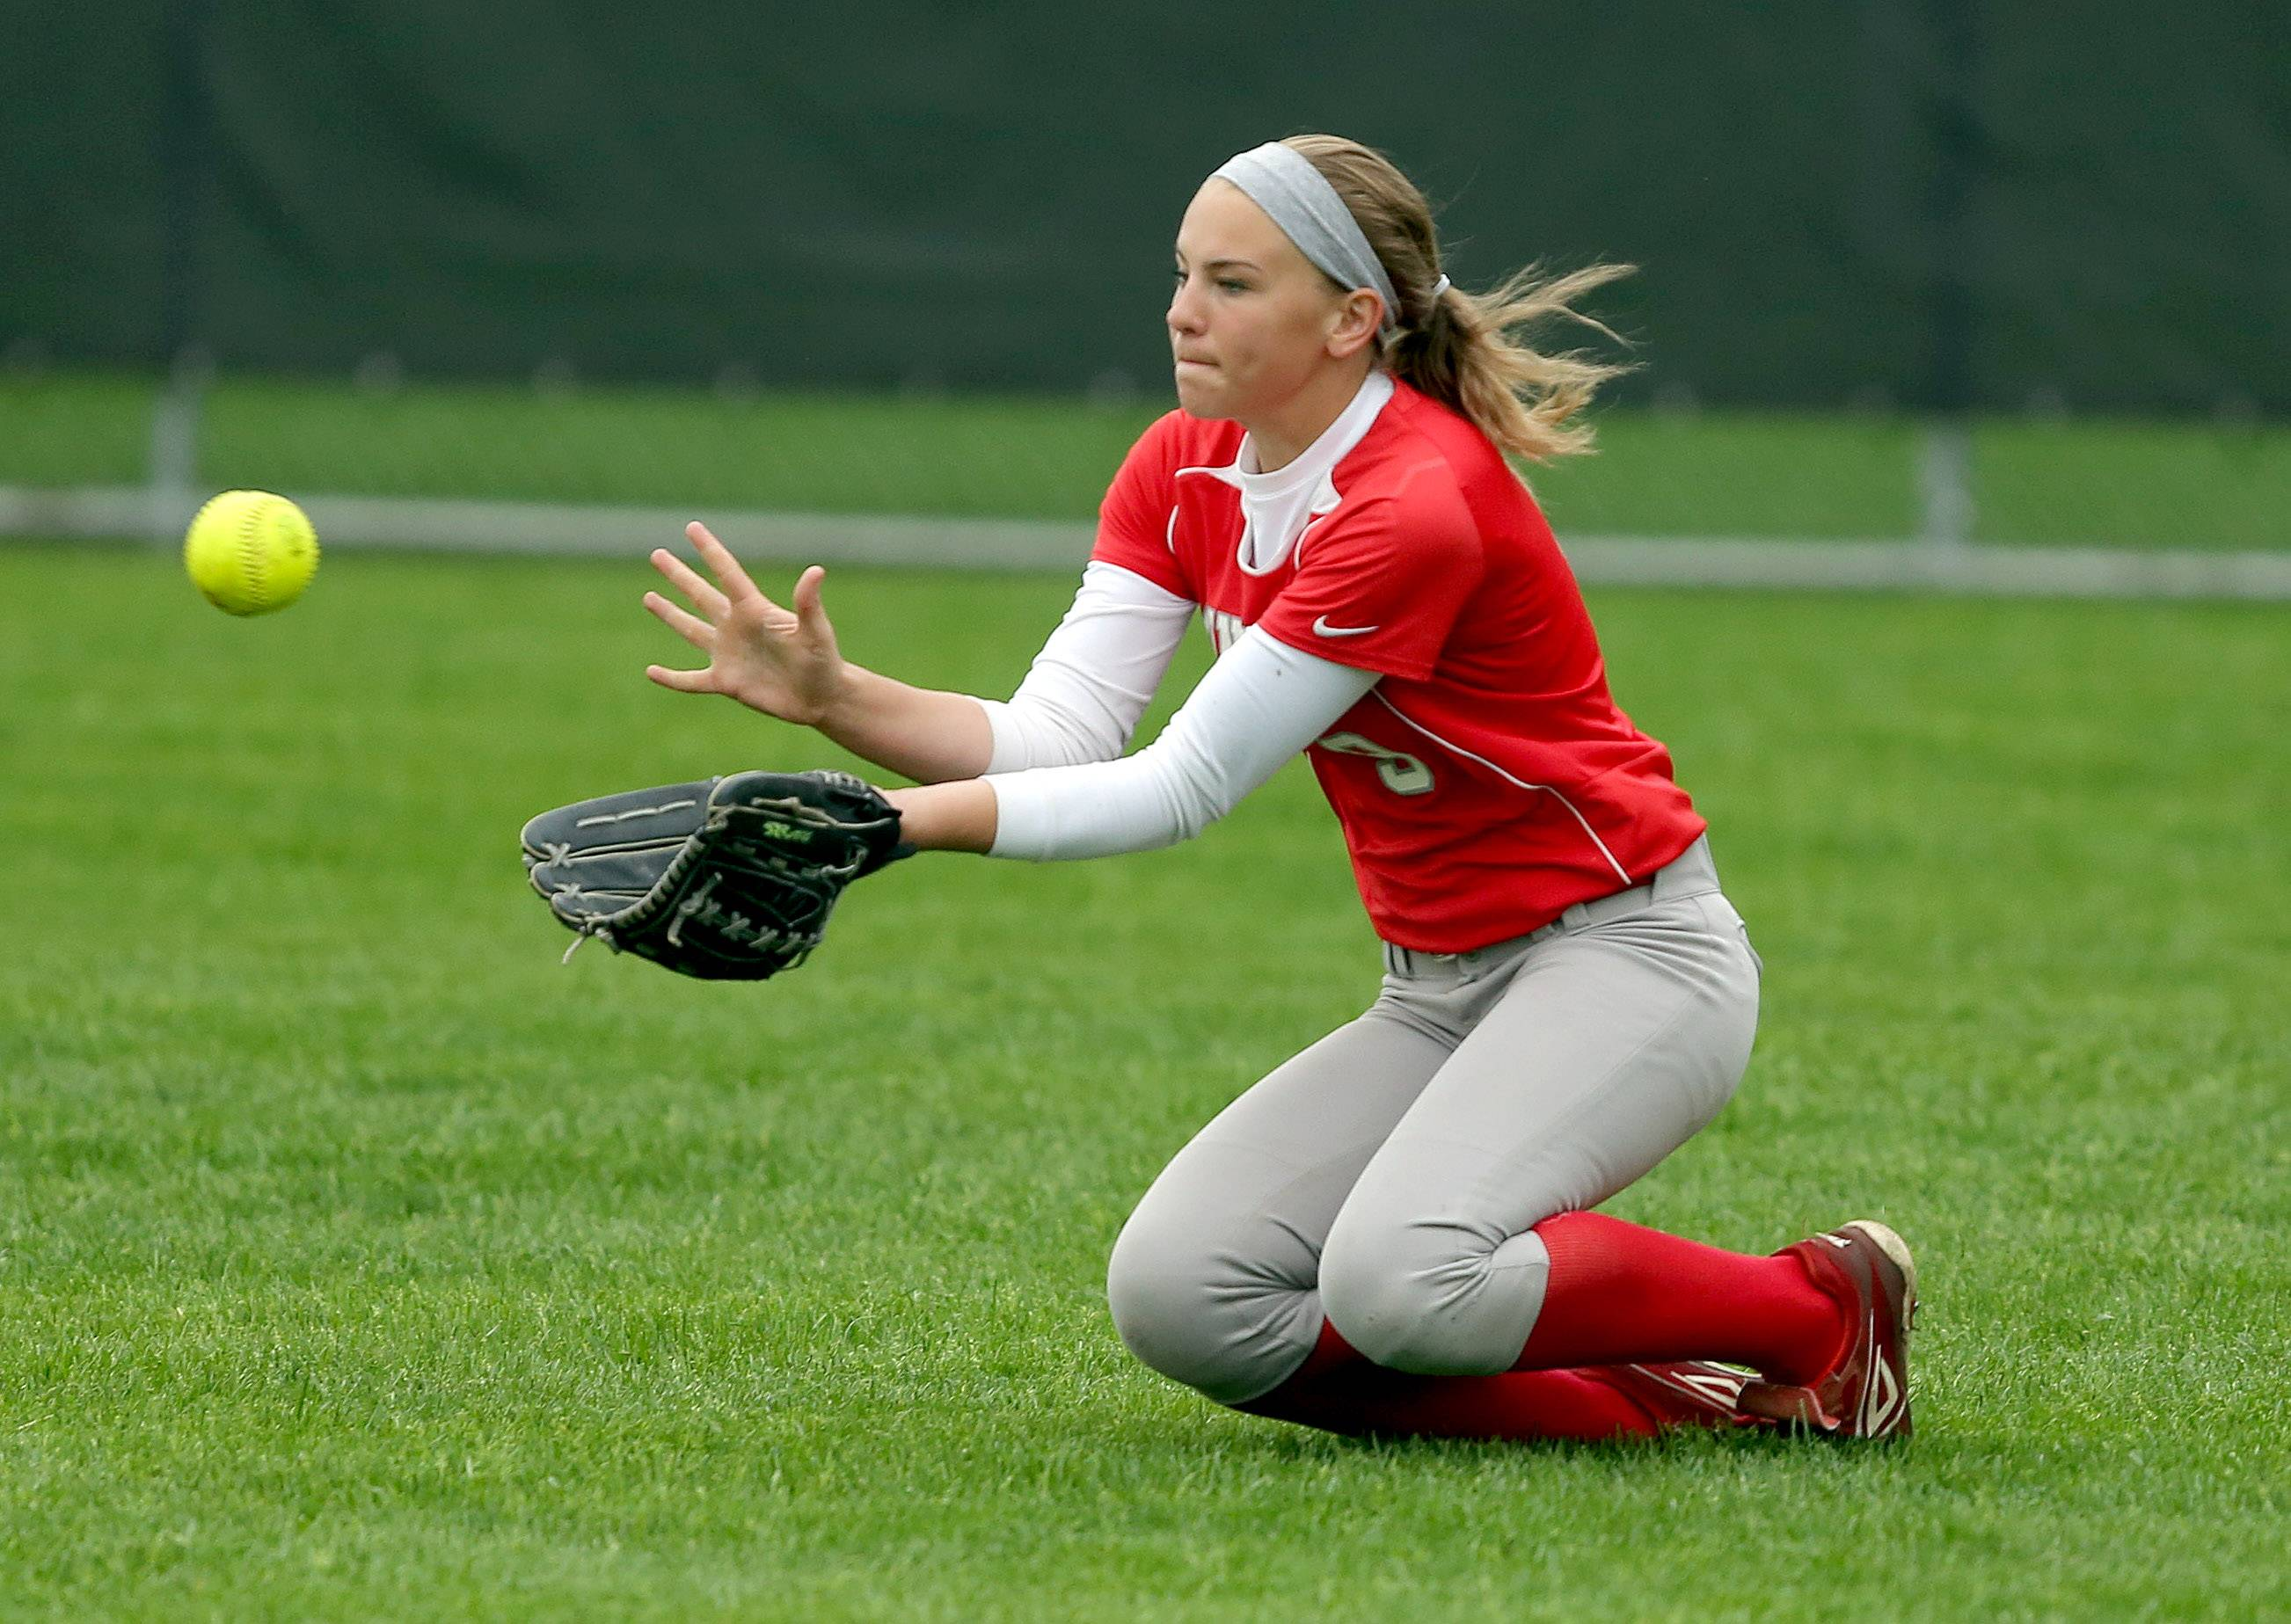 Mundelein's Karlee Busscher makes a diving catch in center field during their game against Libertyville Tuesday at Libertyville High School.